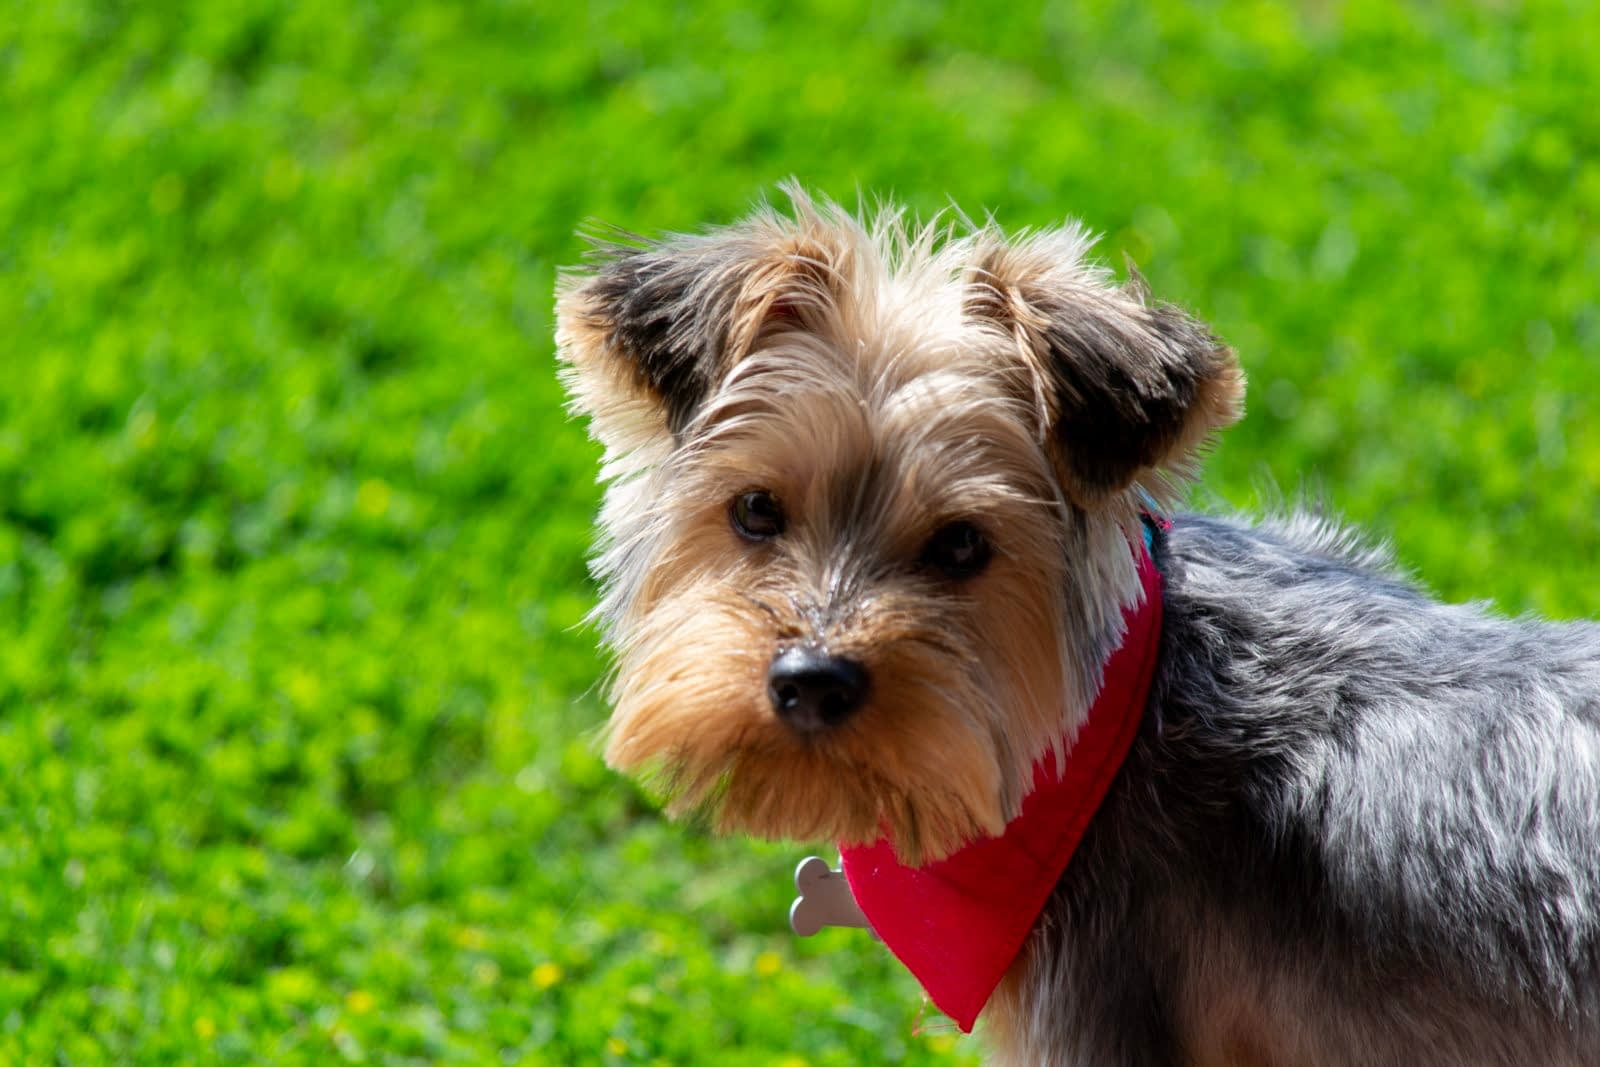 Teacup Yorkie puppies for sale in WV